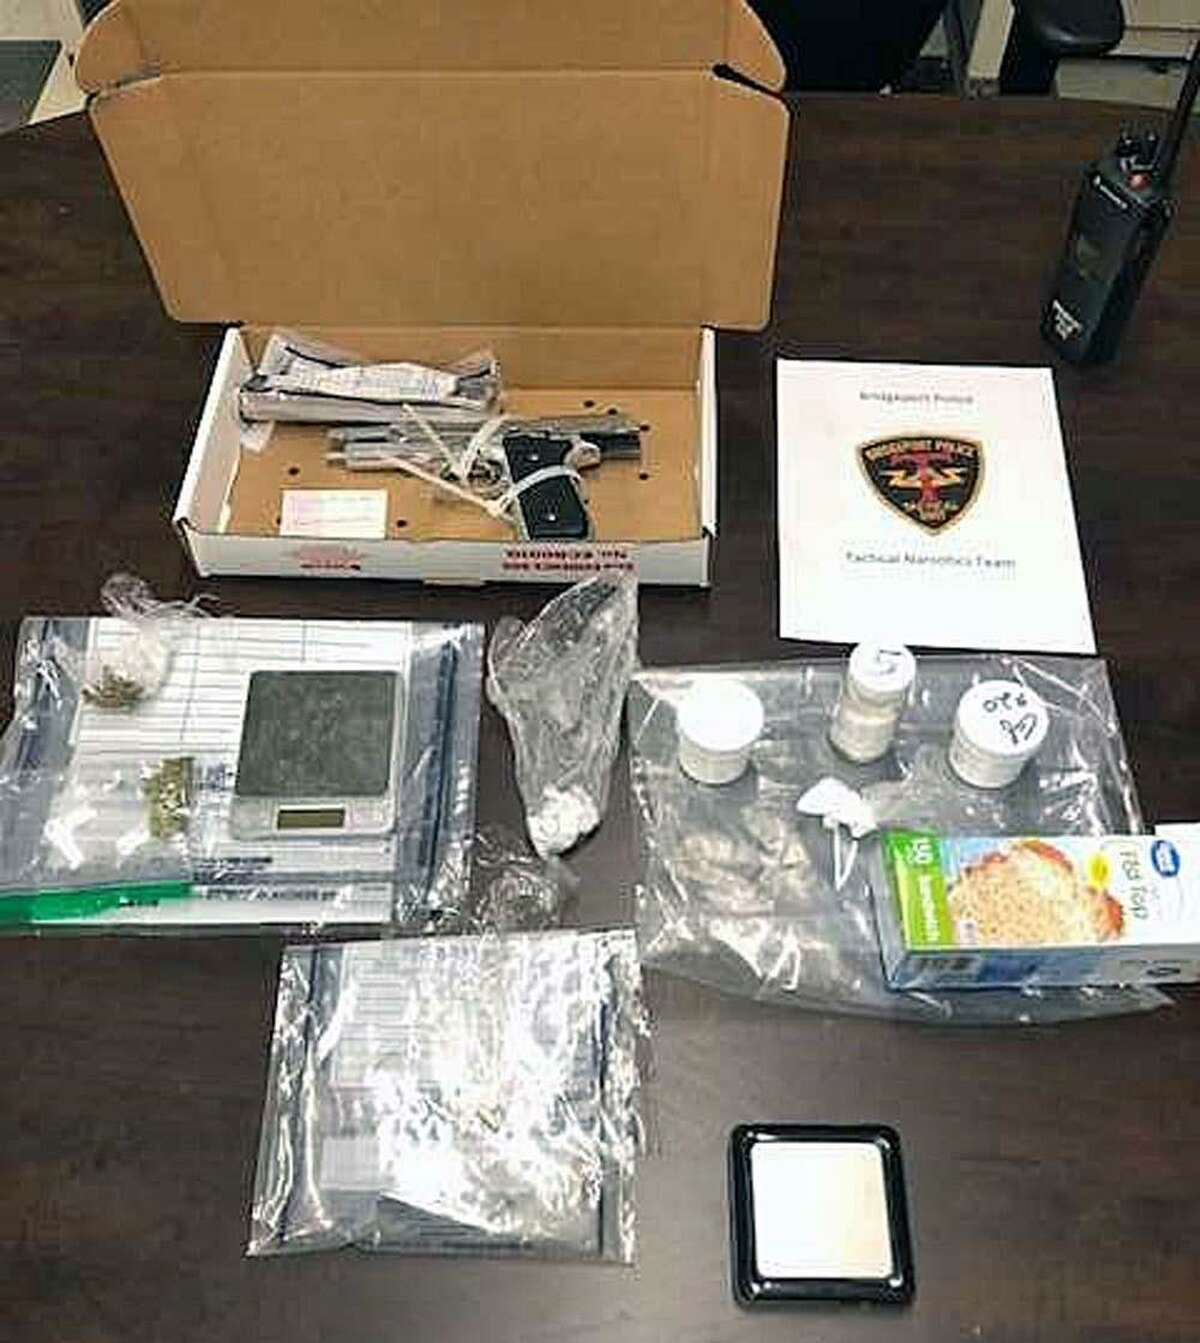 Items seized by the Bridgeport, Conn., Police Department's Tactical Narcotics Team during a recent arrest in the city.